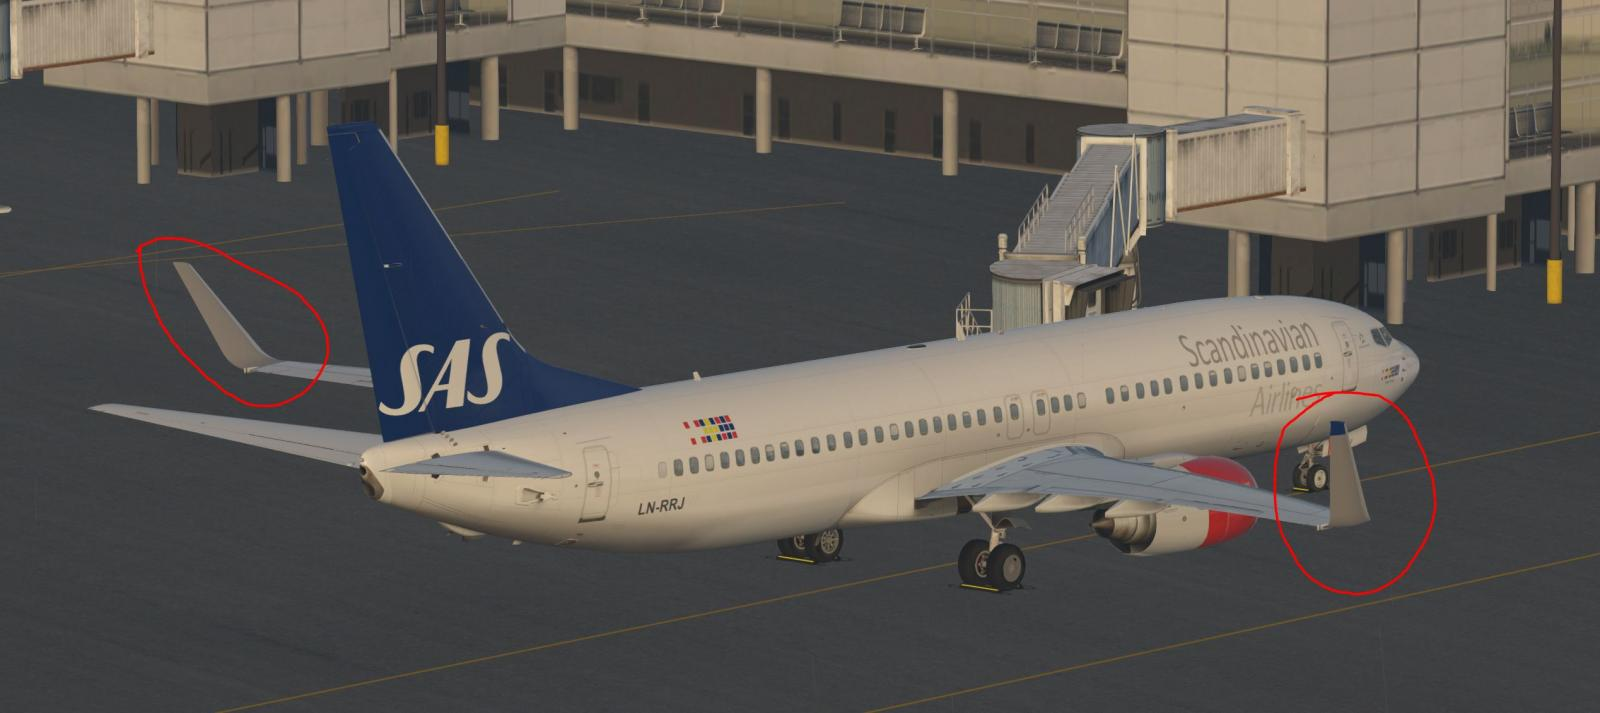 V3 31 - Winglets texture issue - ZIBO B738-800 modified - X-Plane